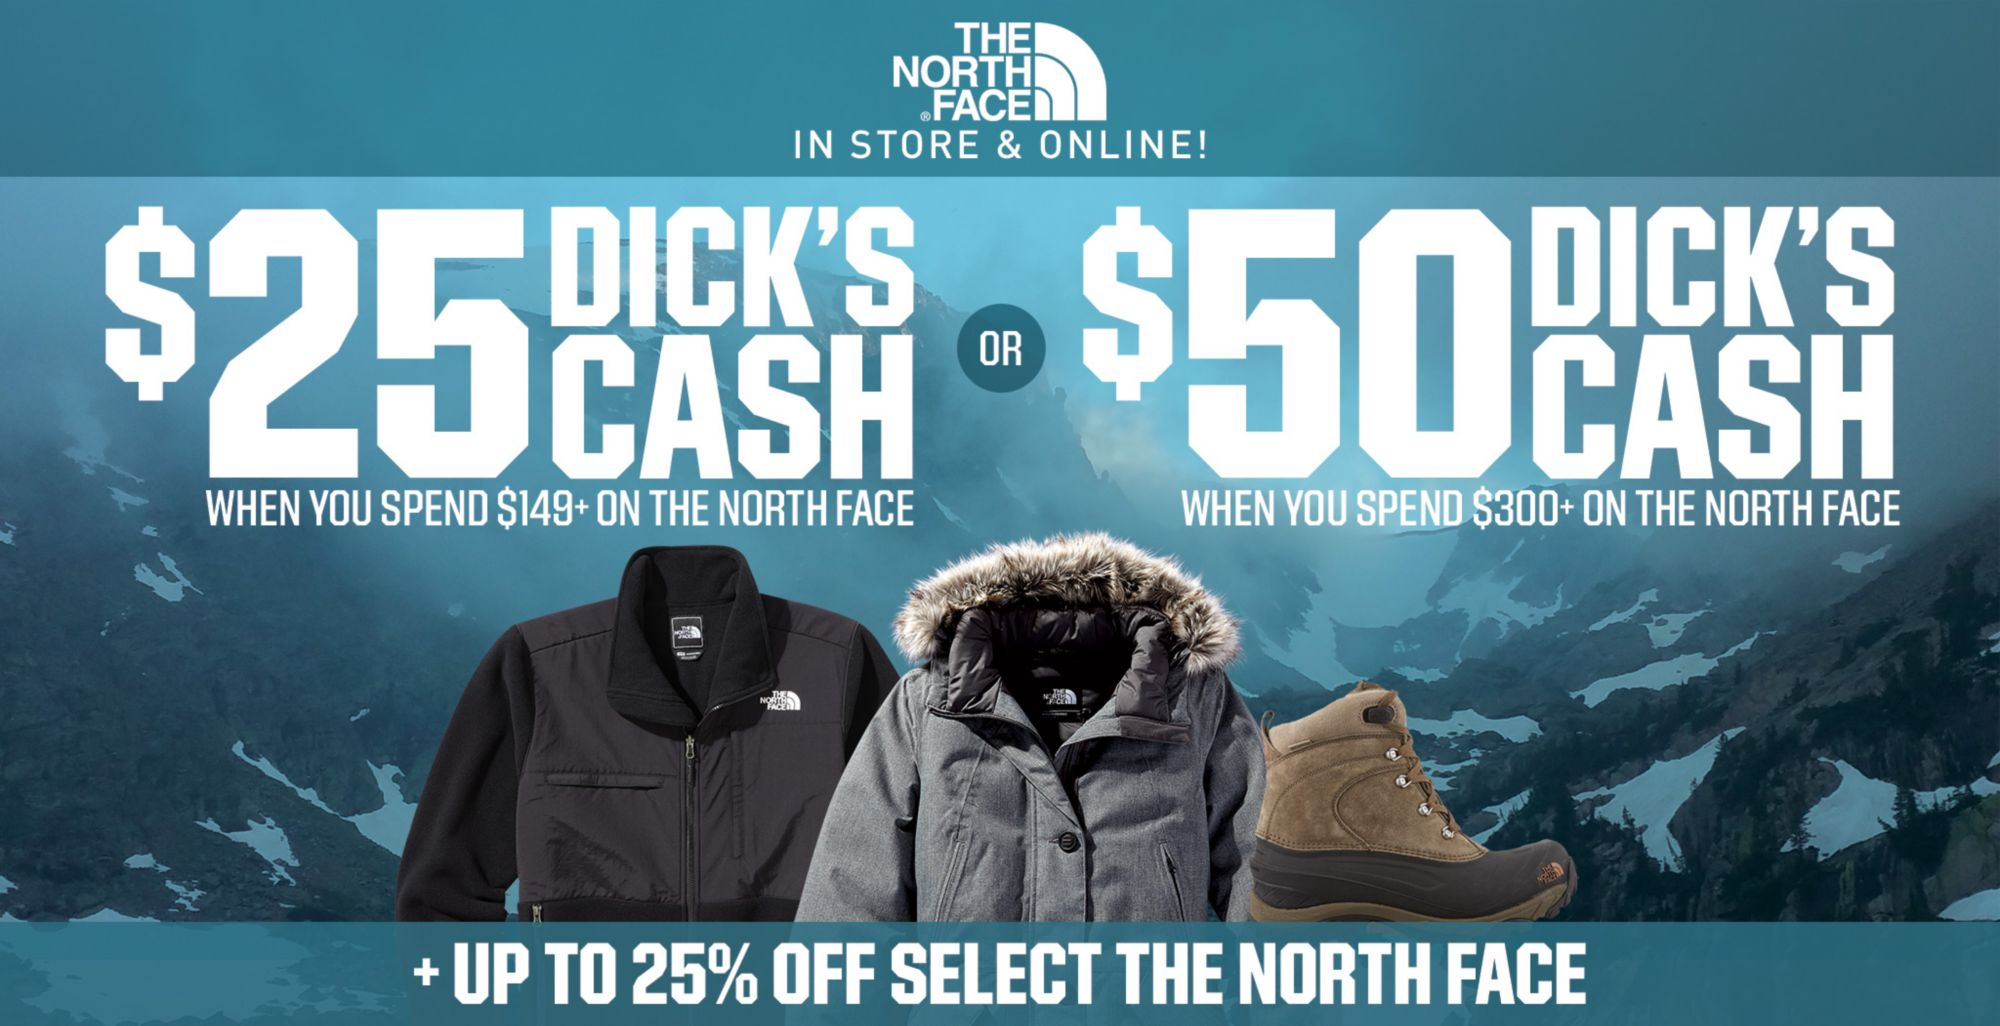 Shop The North Face + DICK'S Cash